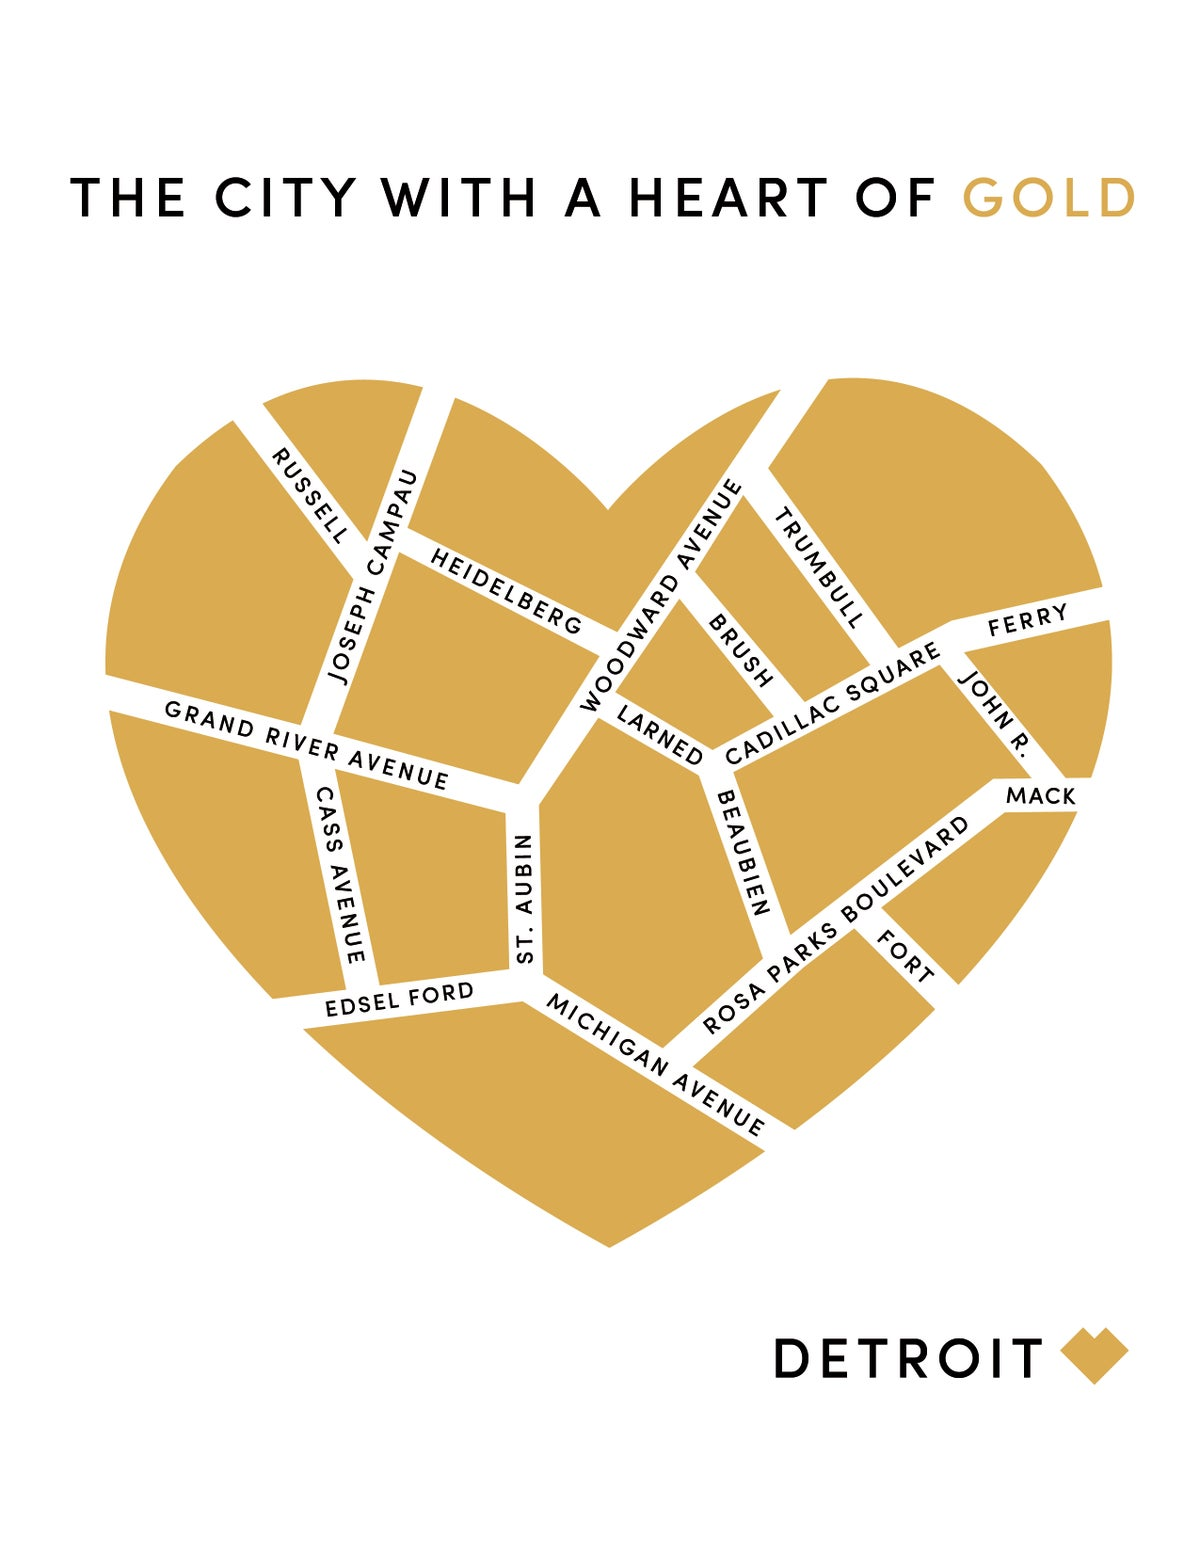 Detroit. The City With a Heart of Gold Print